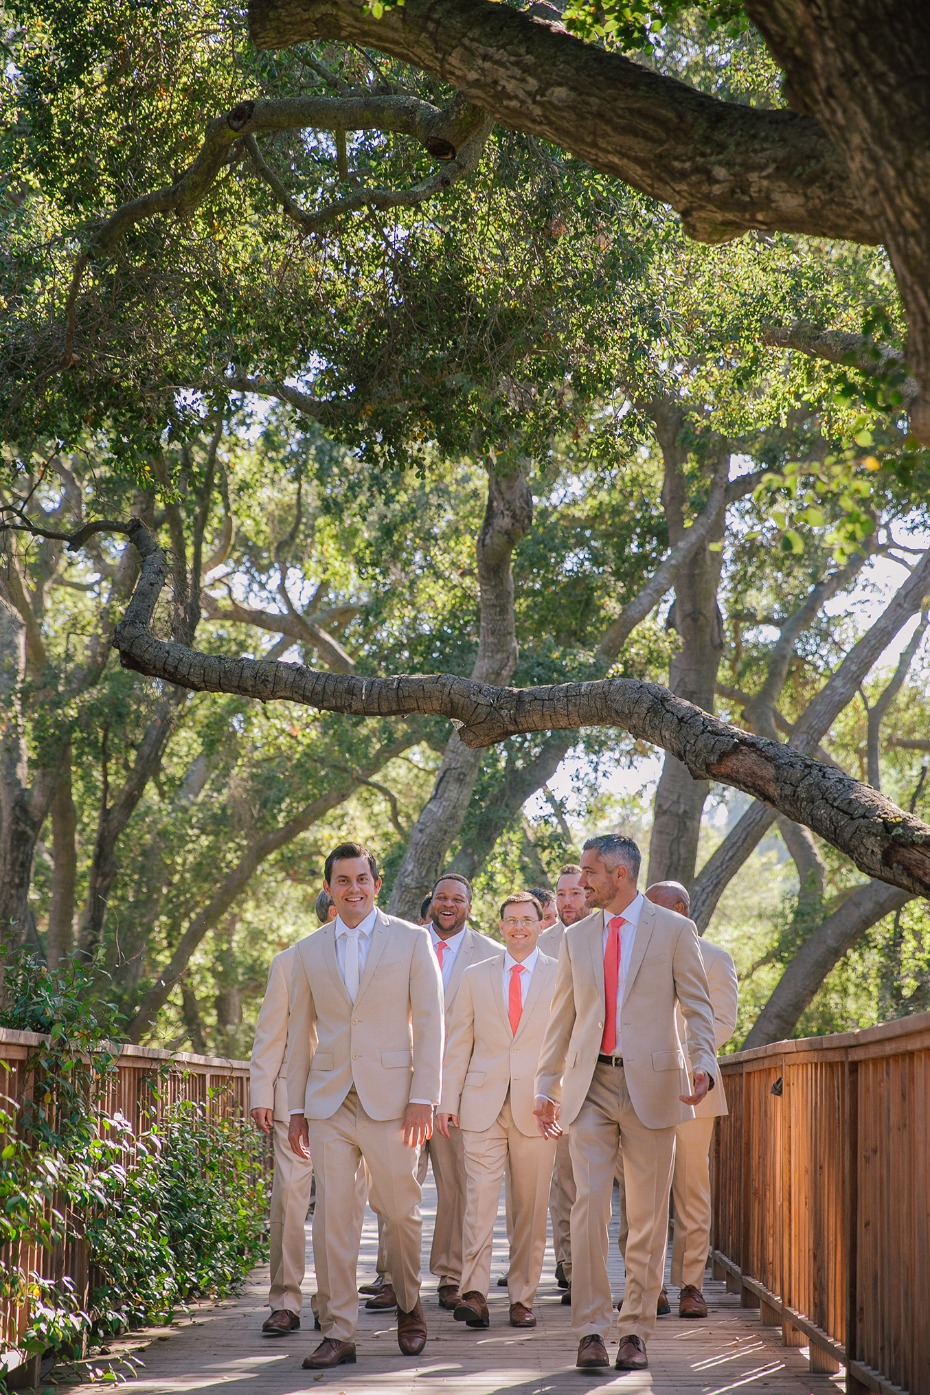 Tan suits with bright ties